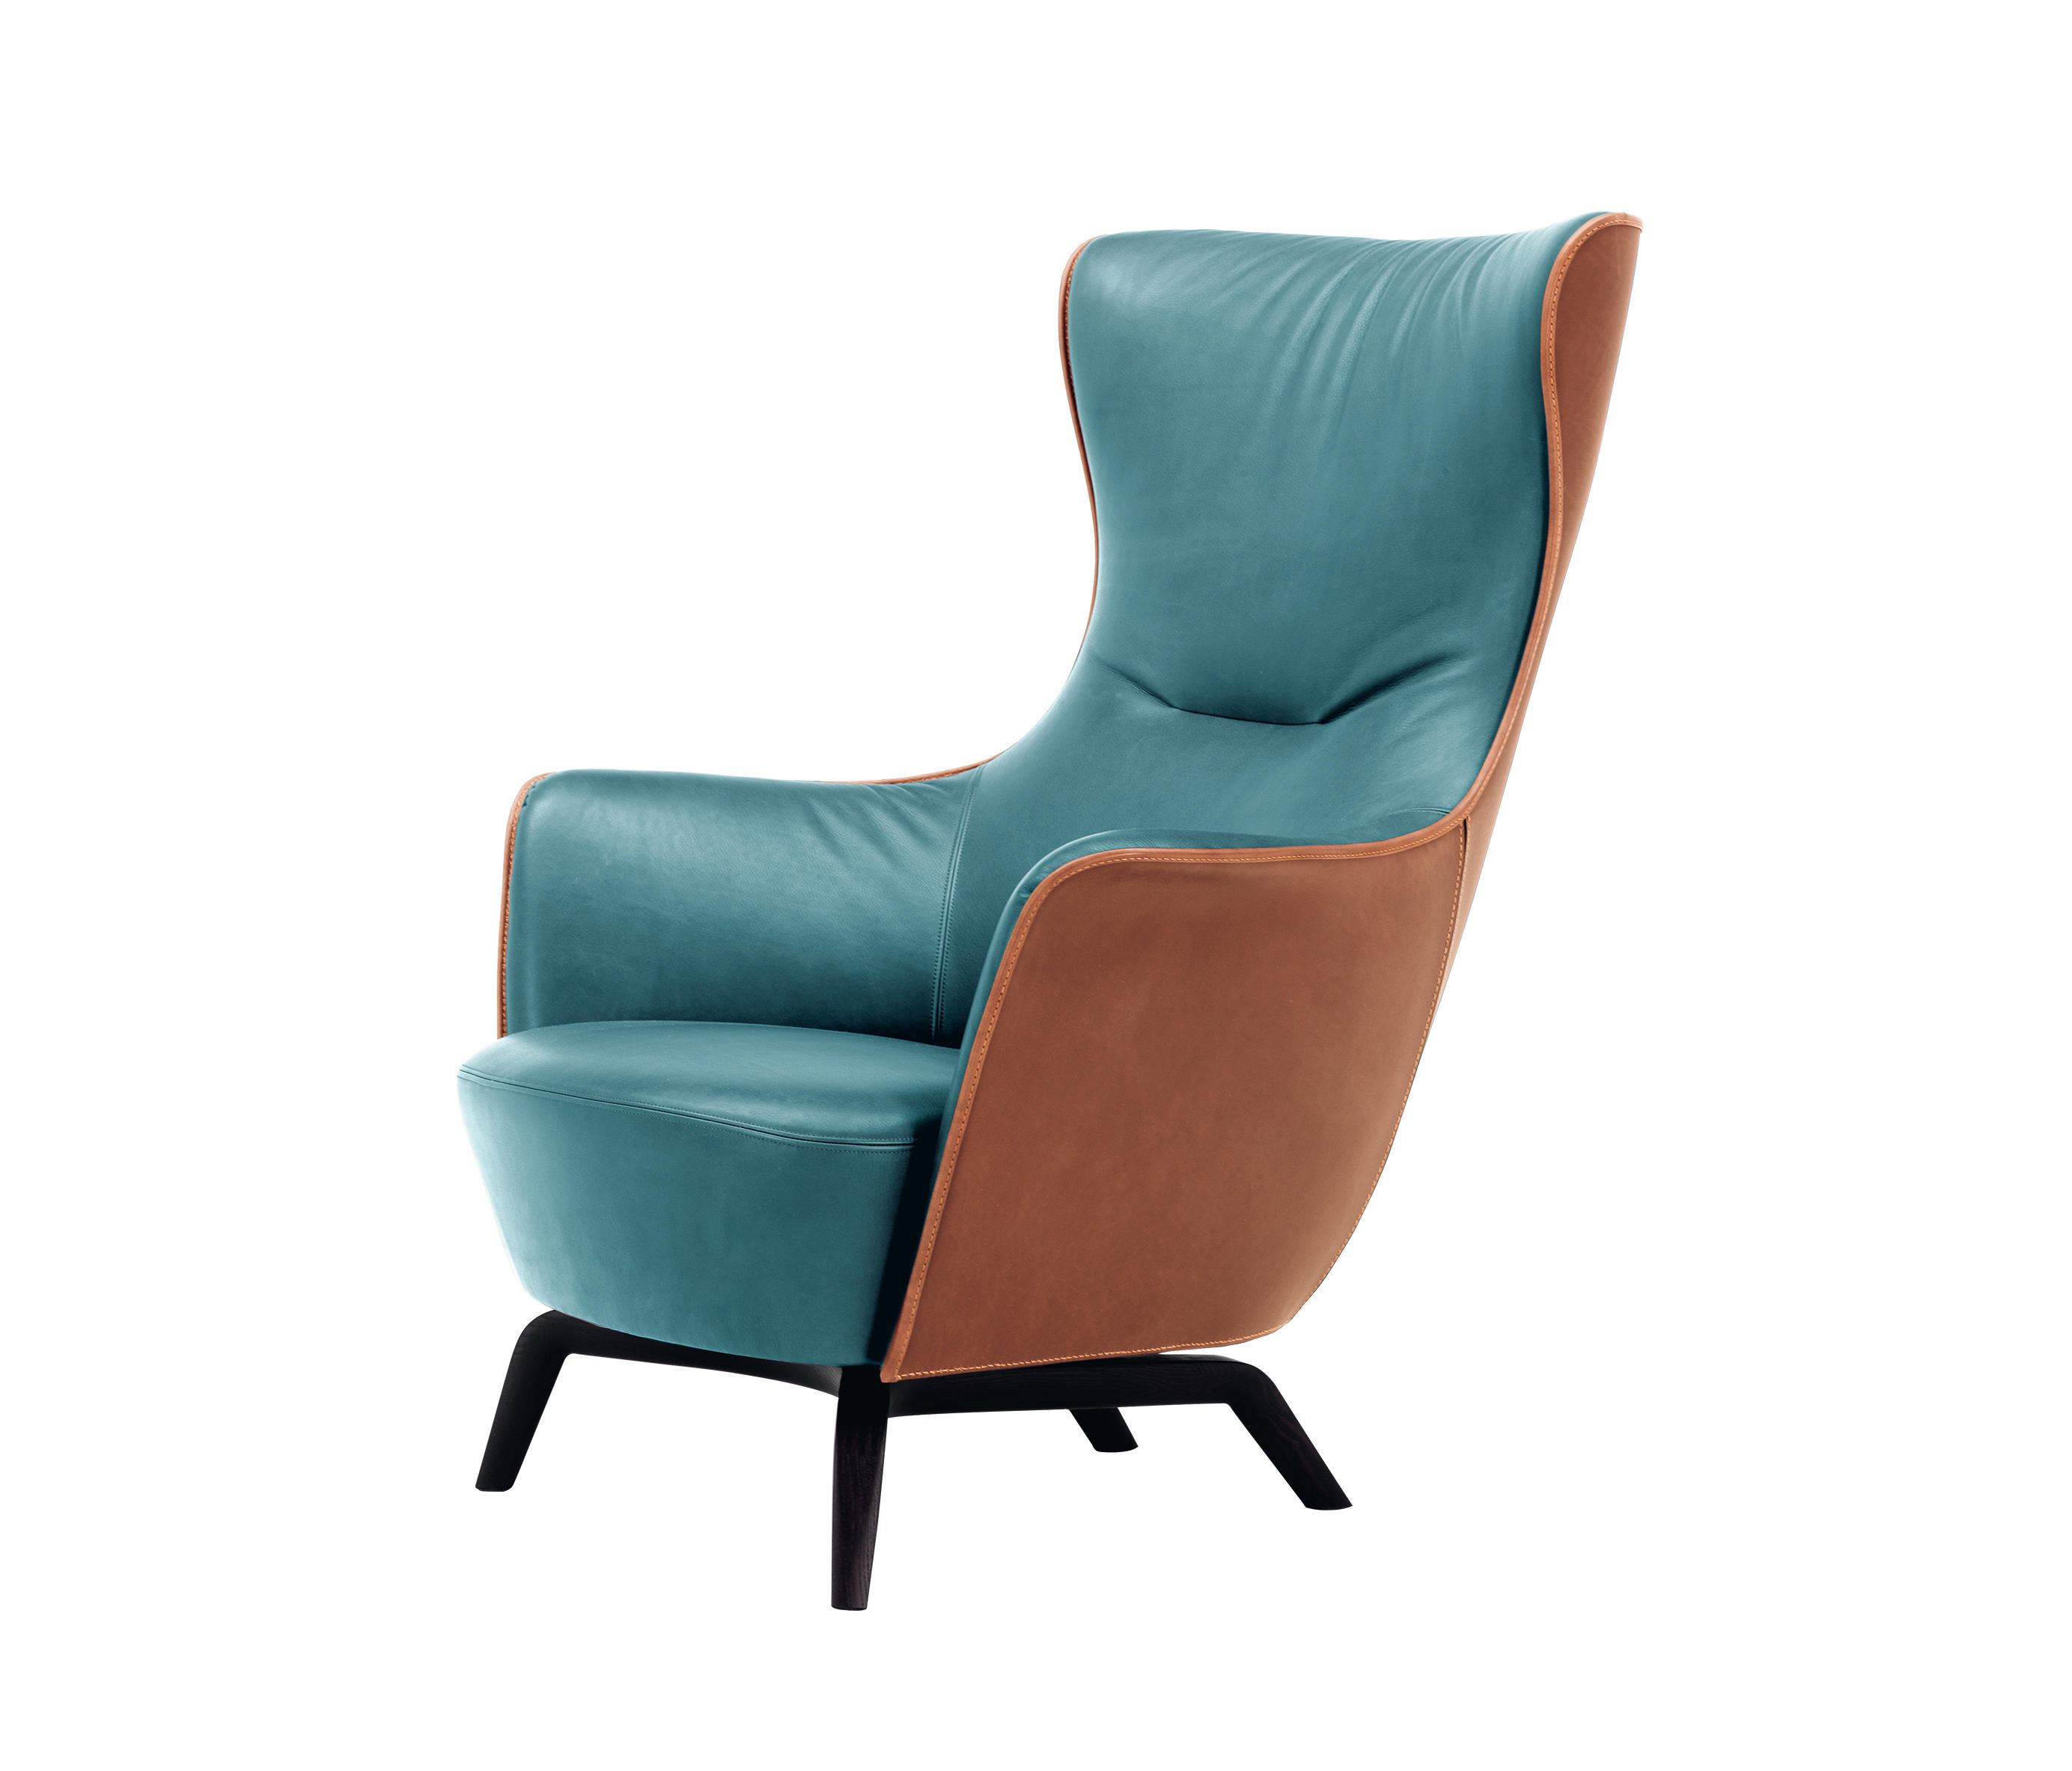 MAMY BLUE ARMCHAIR - Armchairs from Poltrona Frau | Architonic